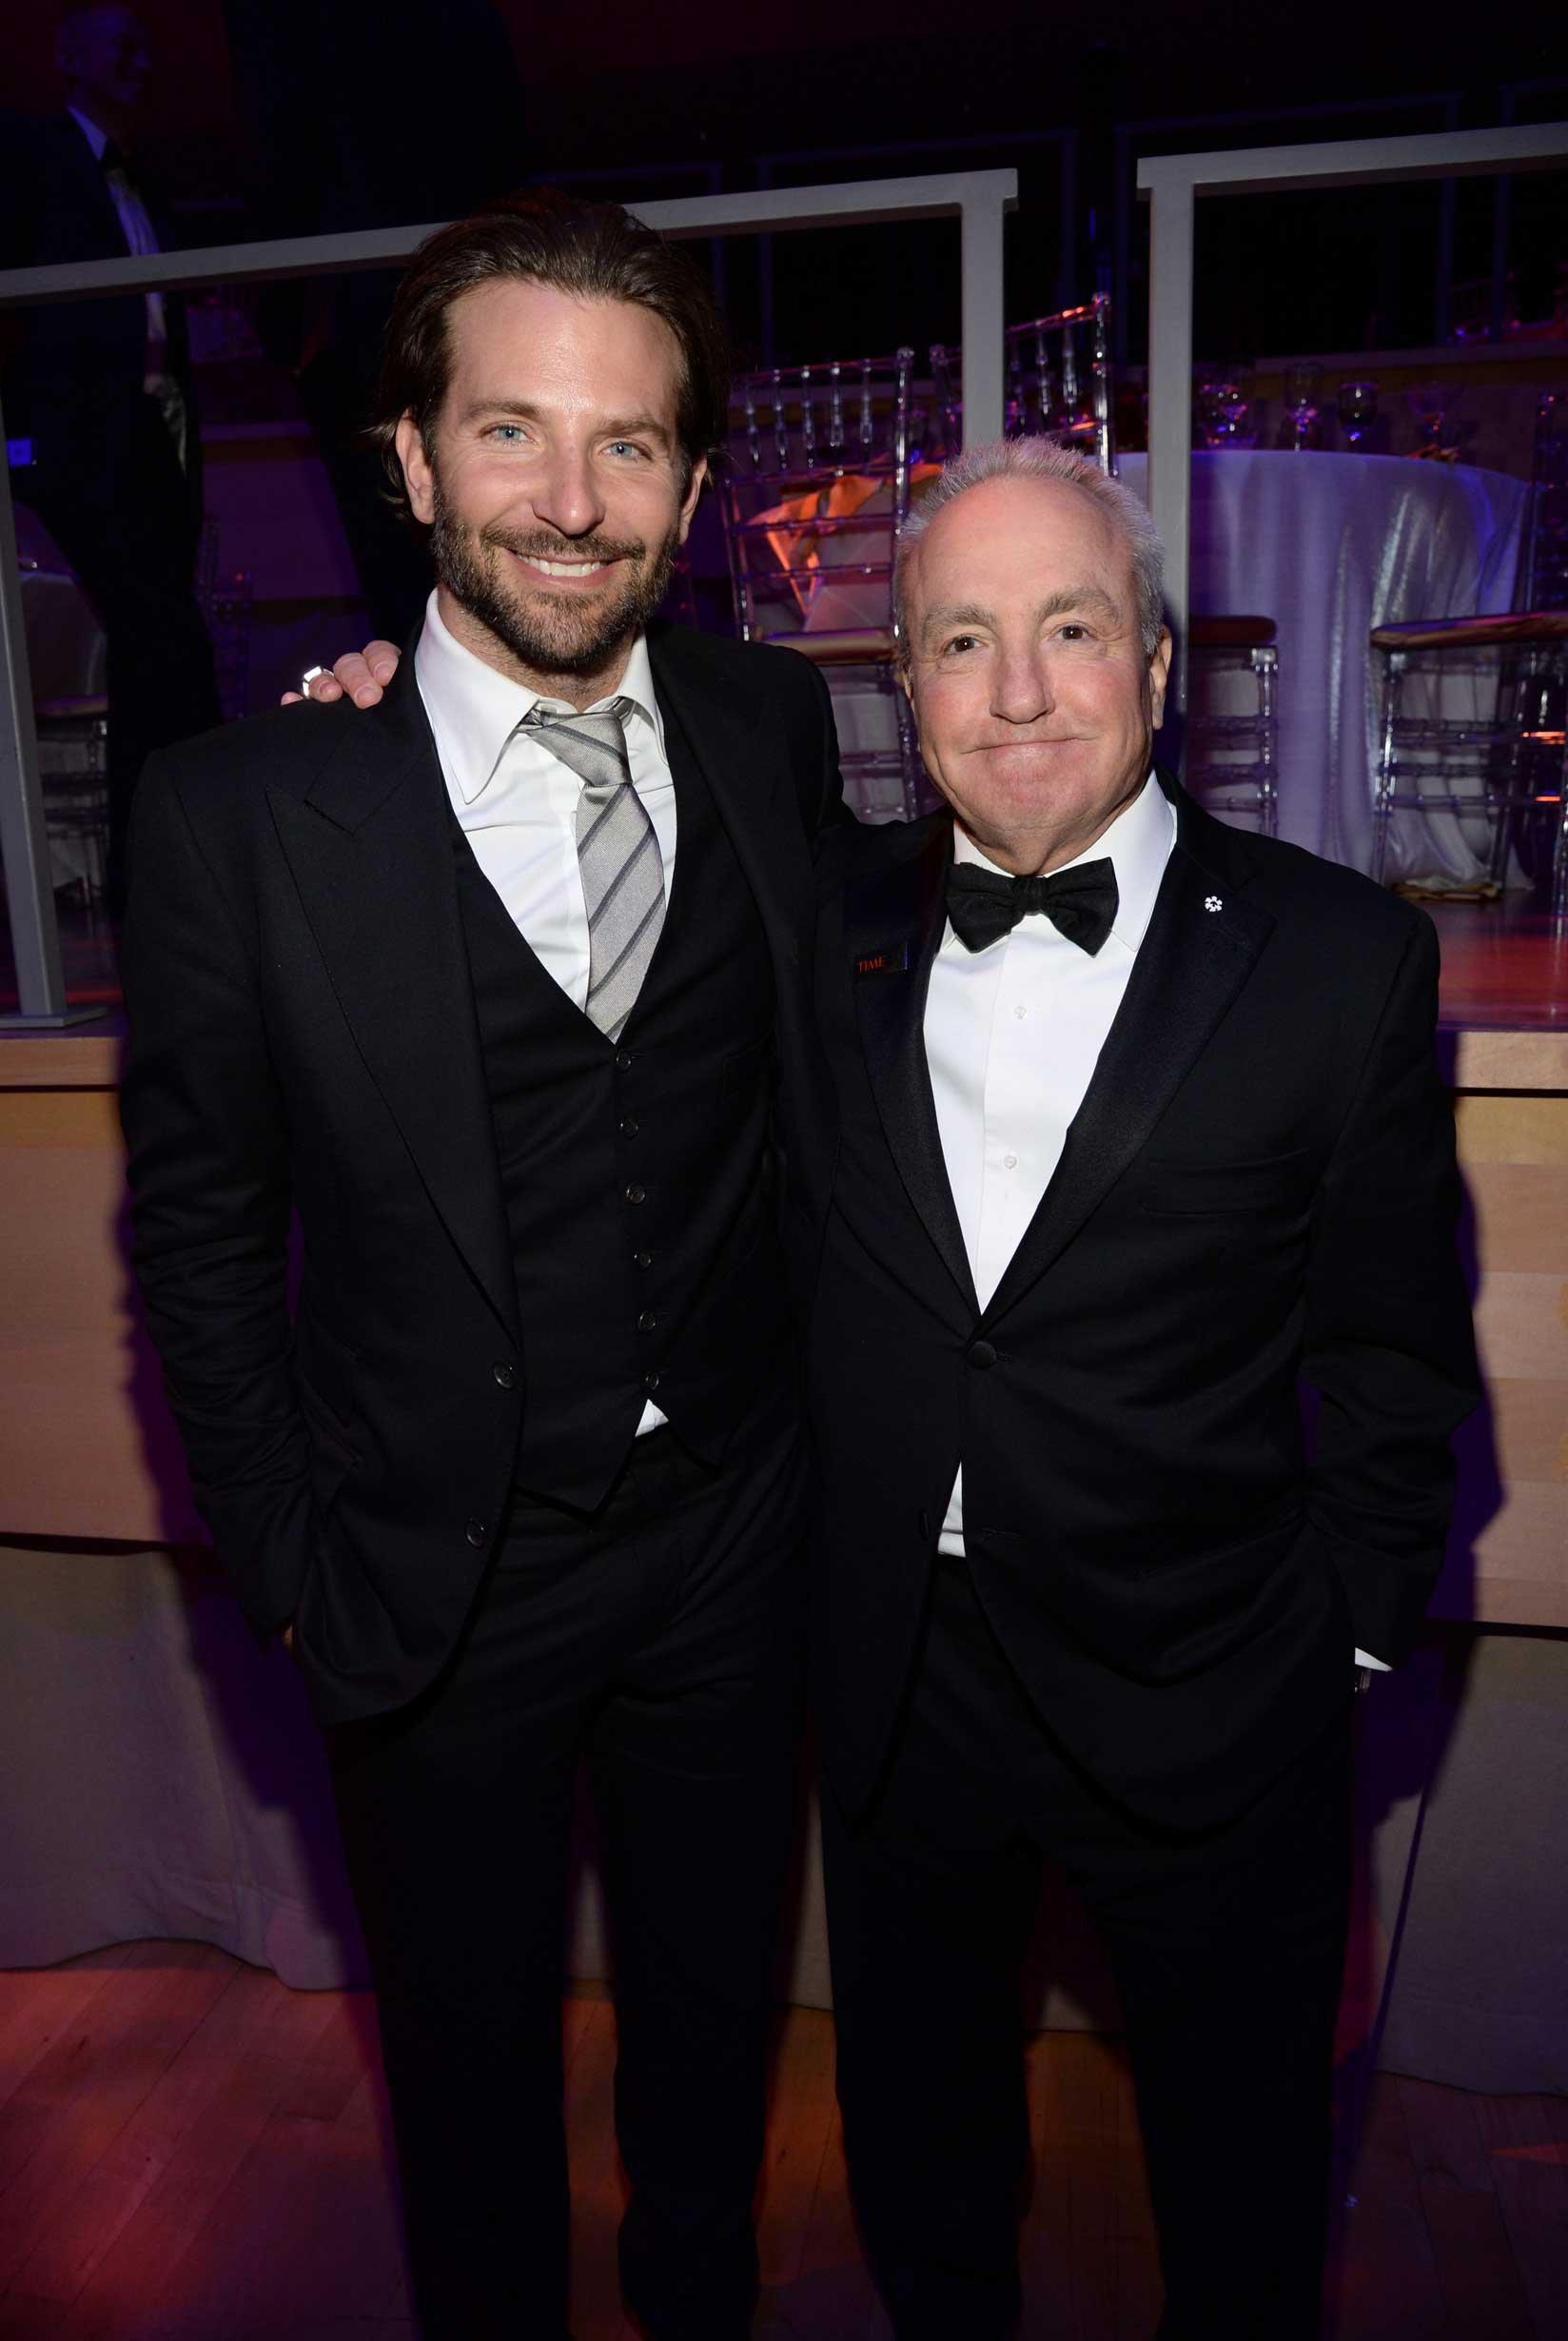 Bradley Cooper and Lorne Michaels attend the TIME 100 Gala at Jazz at Lincoln Center in New York City on April 21, 2015.